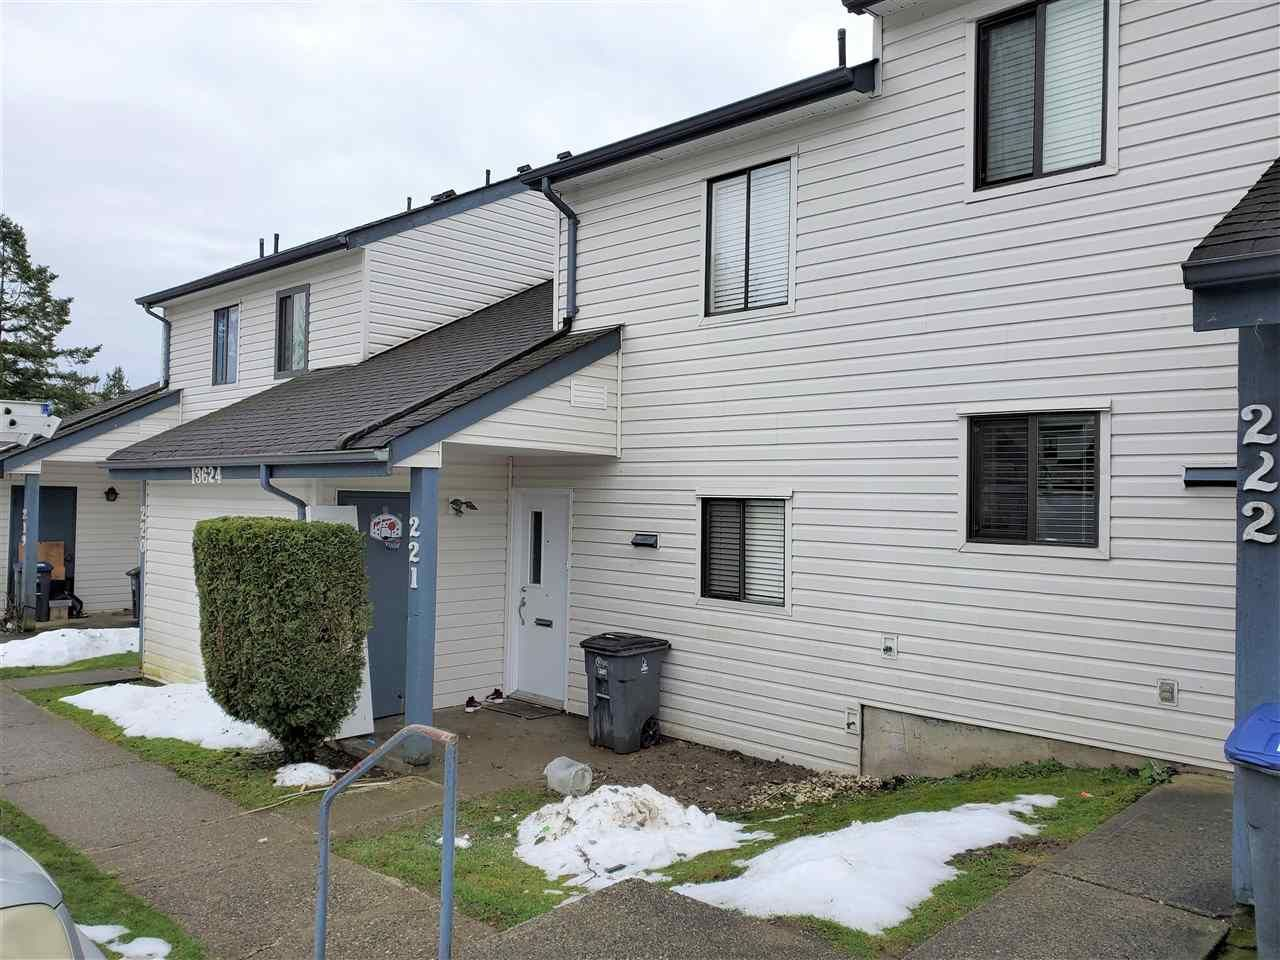 """Main Photo: 221 13624 67 Avenue in Surrey: East Newton Townhouse for sale in """"Hyland  Creek  Estates"""" : MLS®# R2429636"""